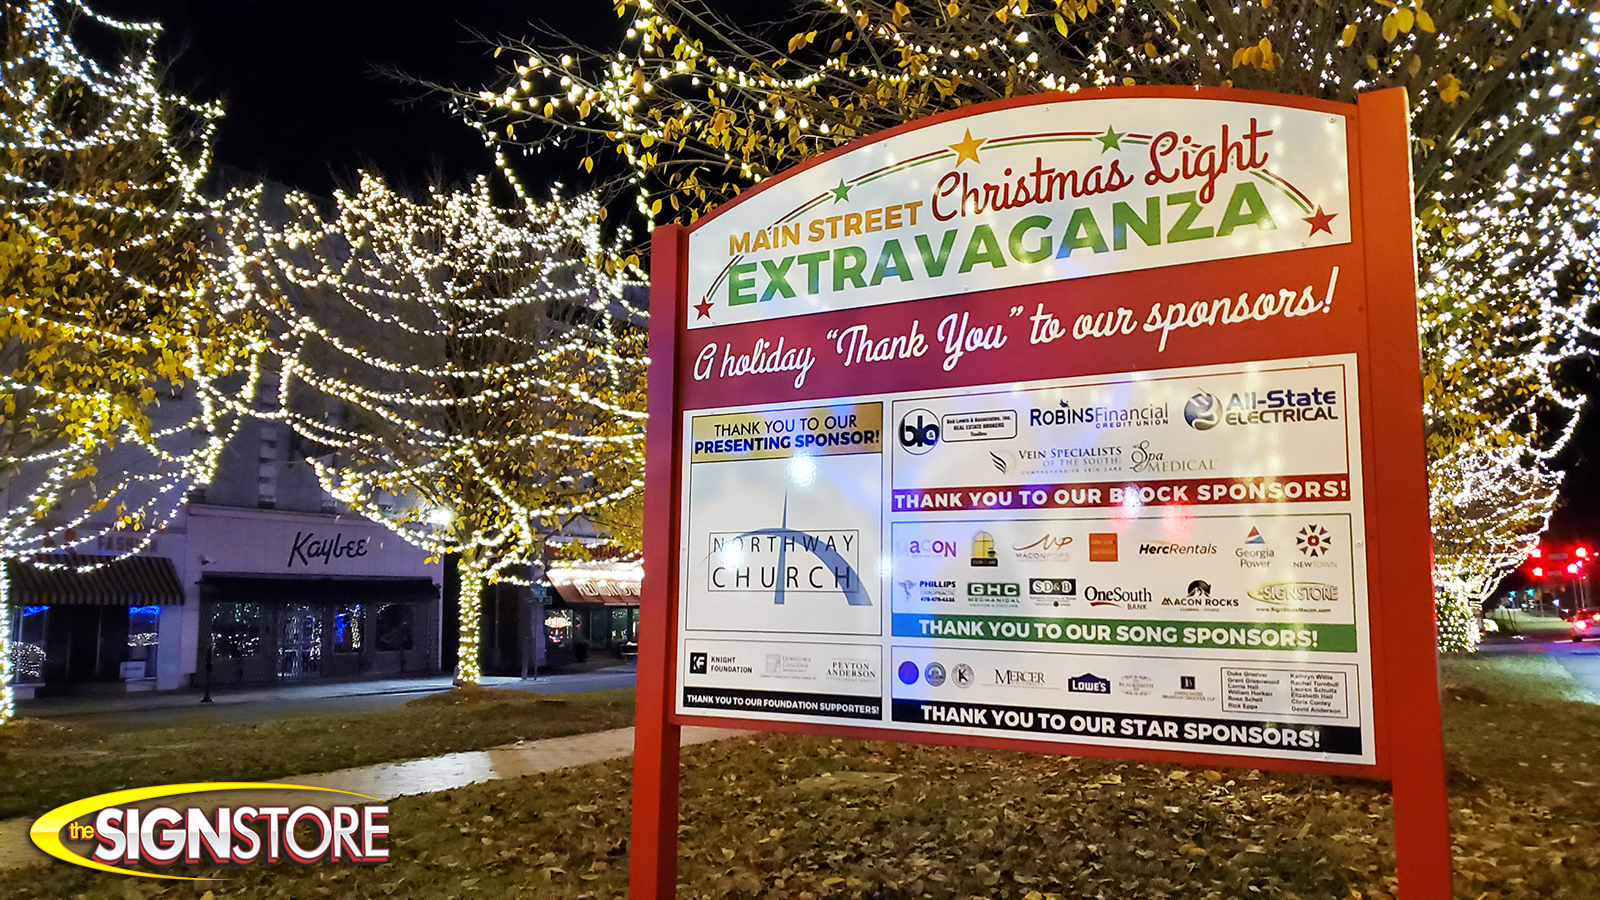 The Sign Store - Main Street Christmas Light Extravaganza